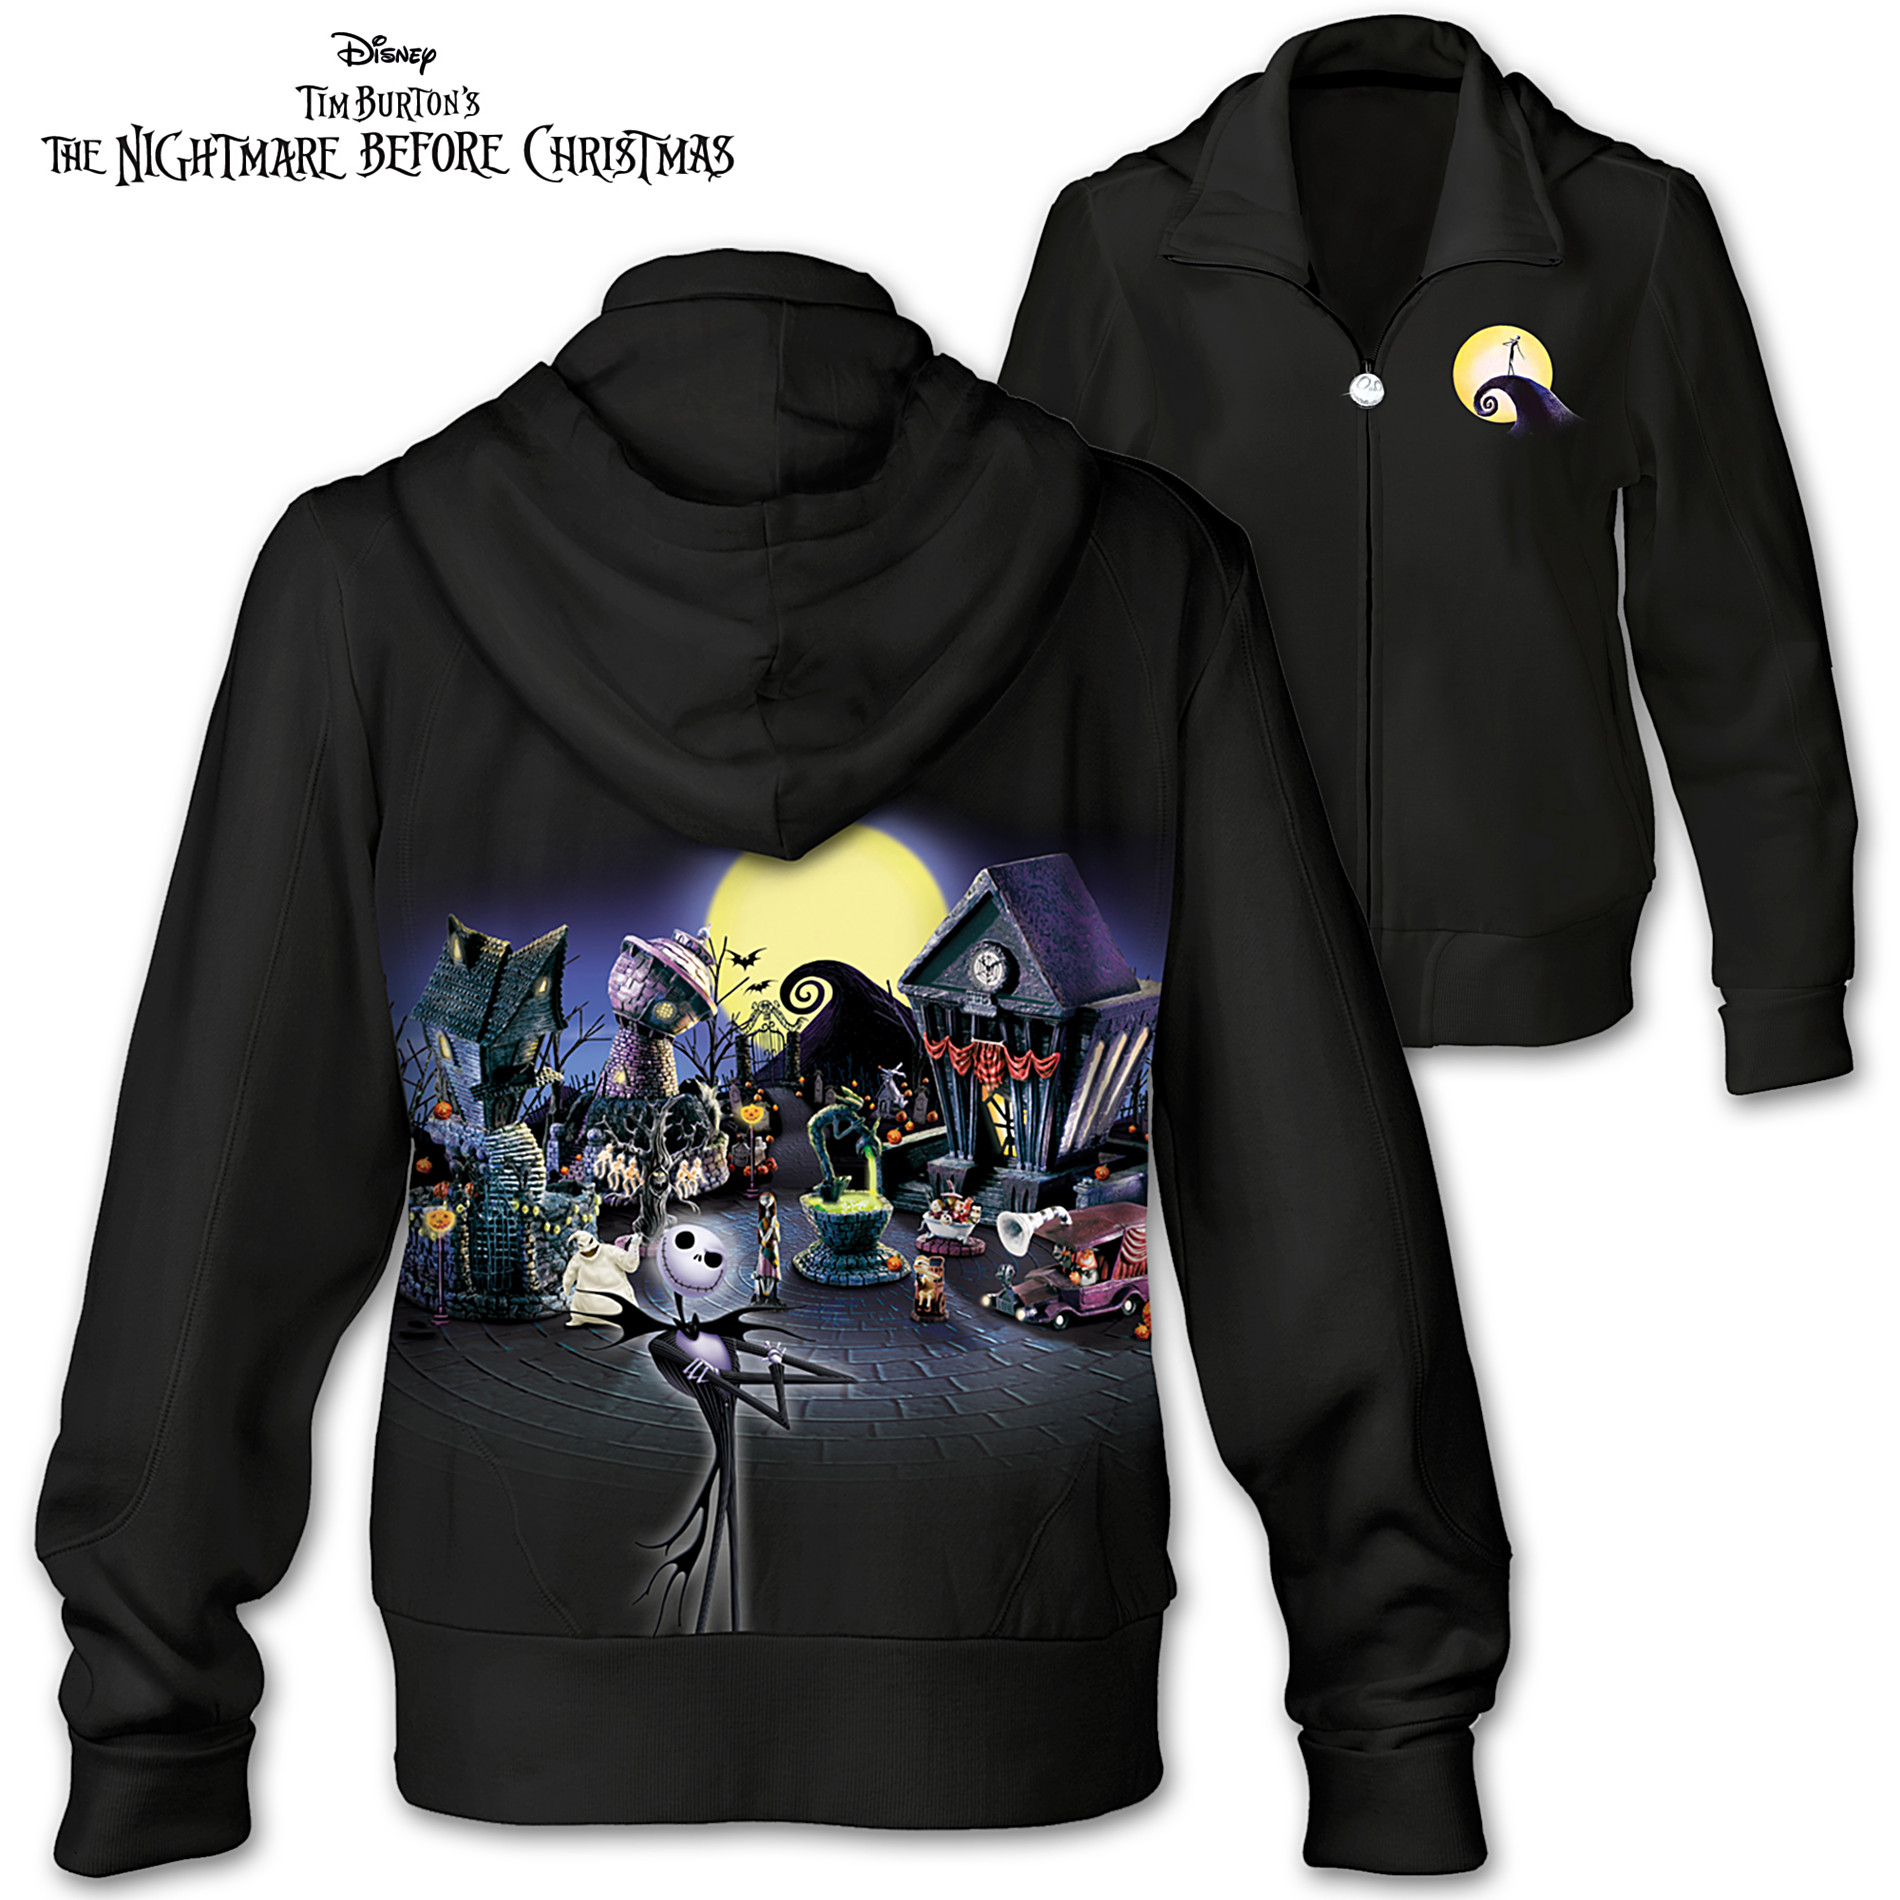 The Bradford Exchange Women's Apparel: Tim Burton's The Nightmare Before Christmas Women's Hoodie at Sears.com